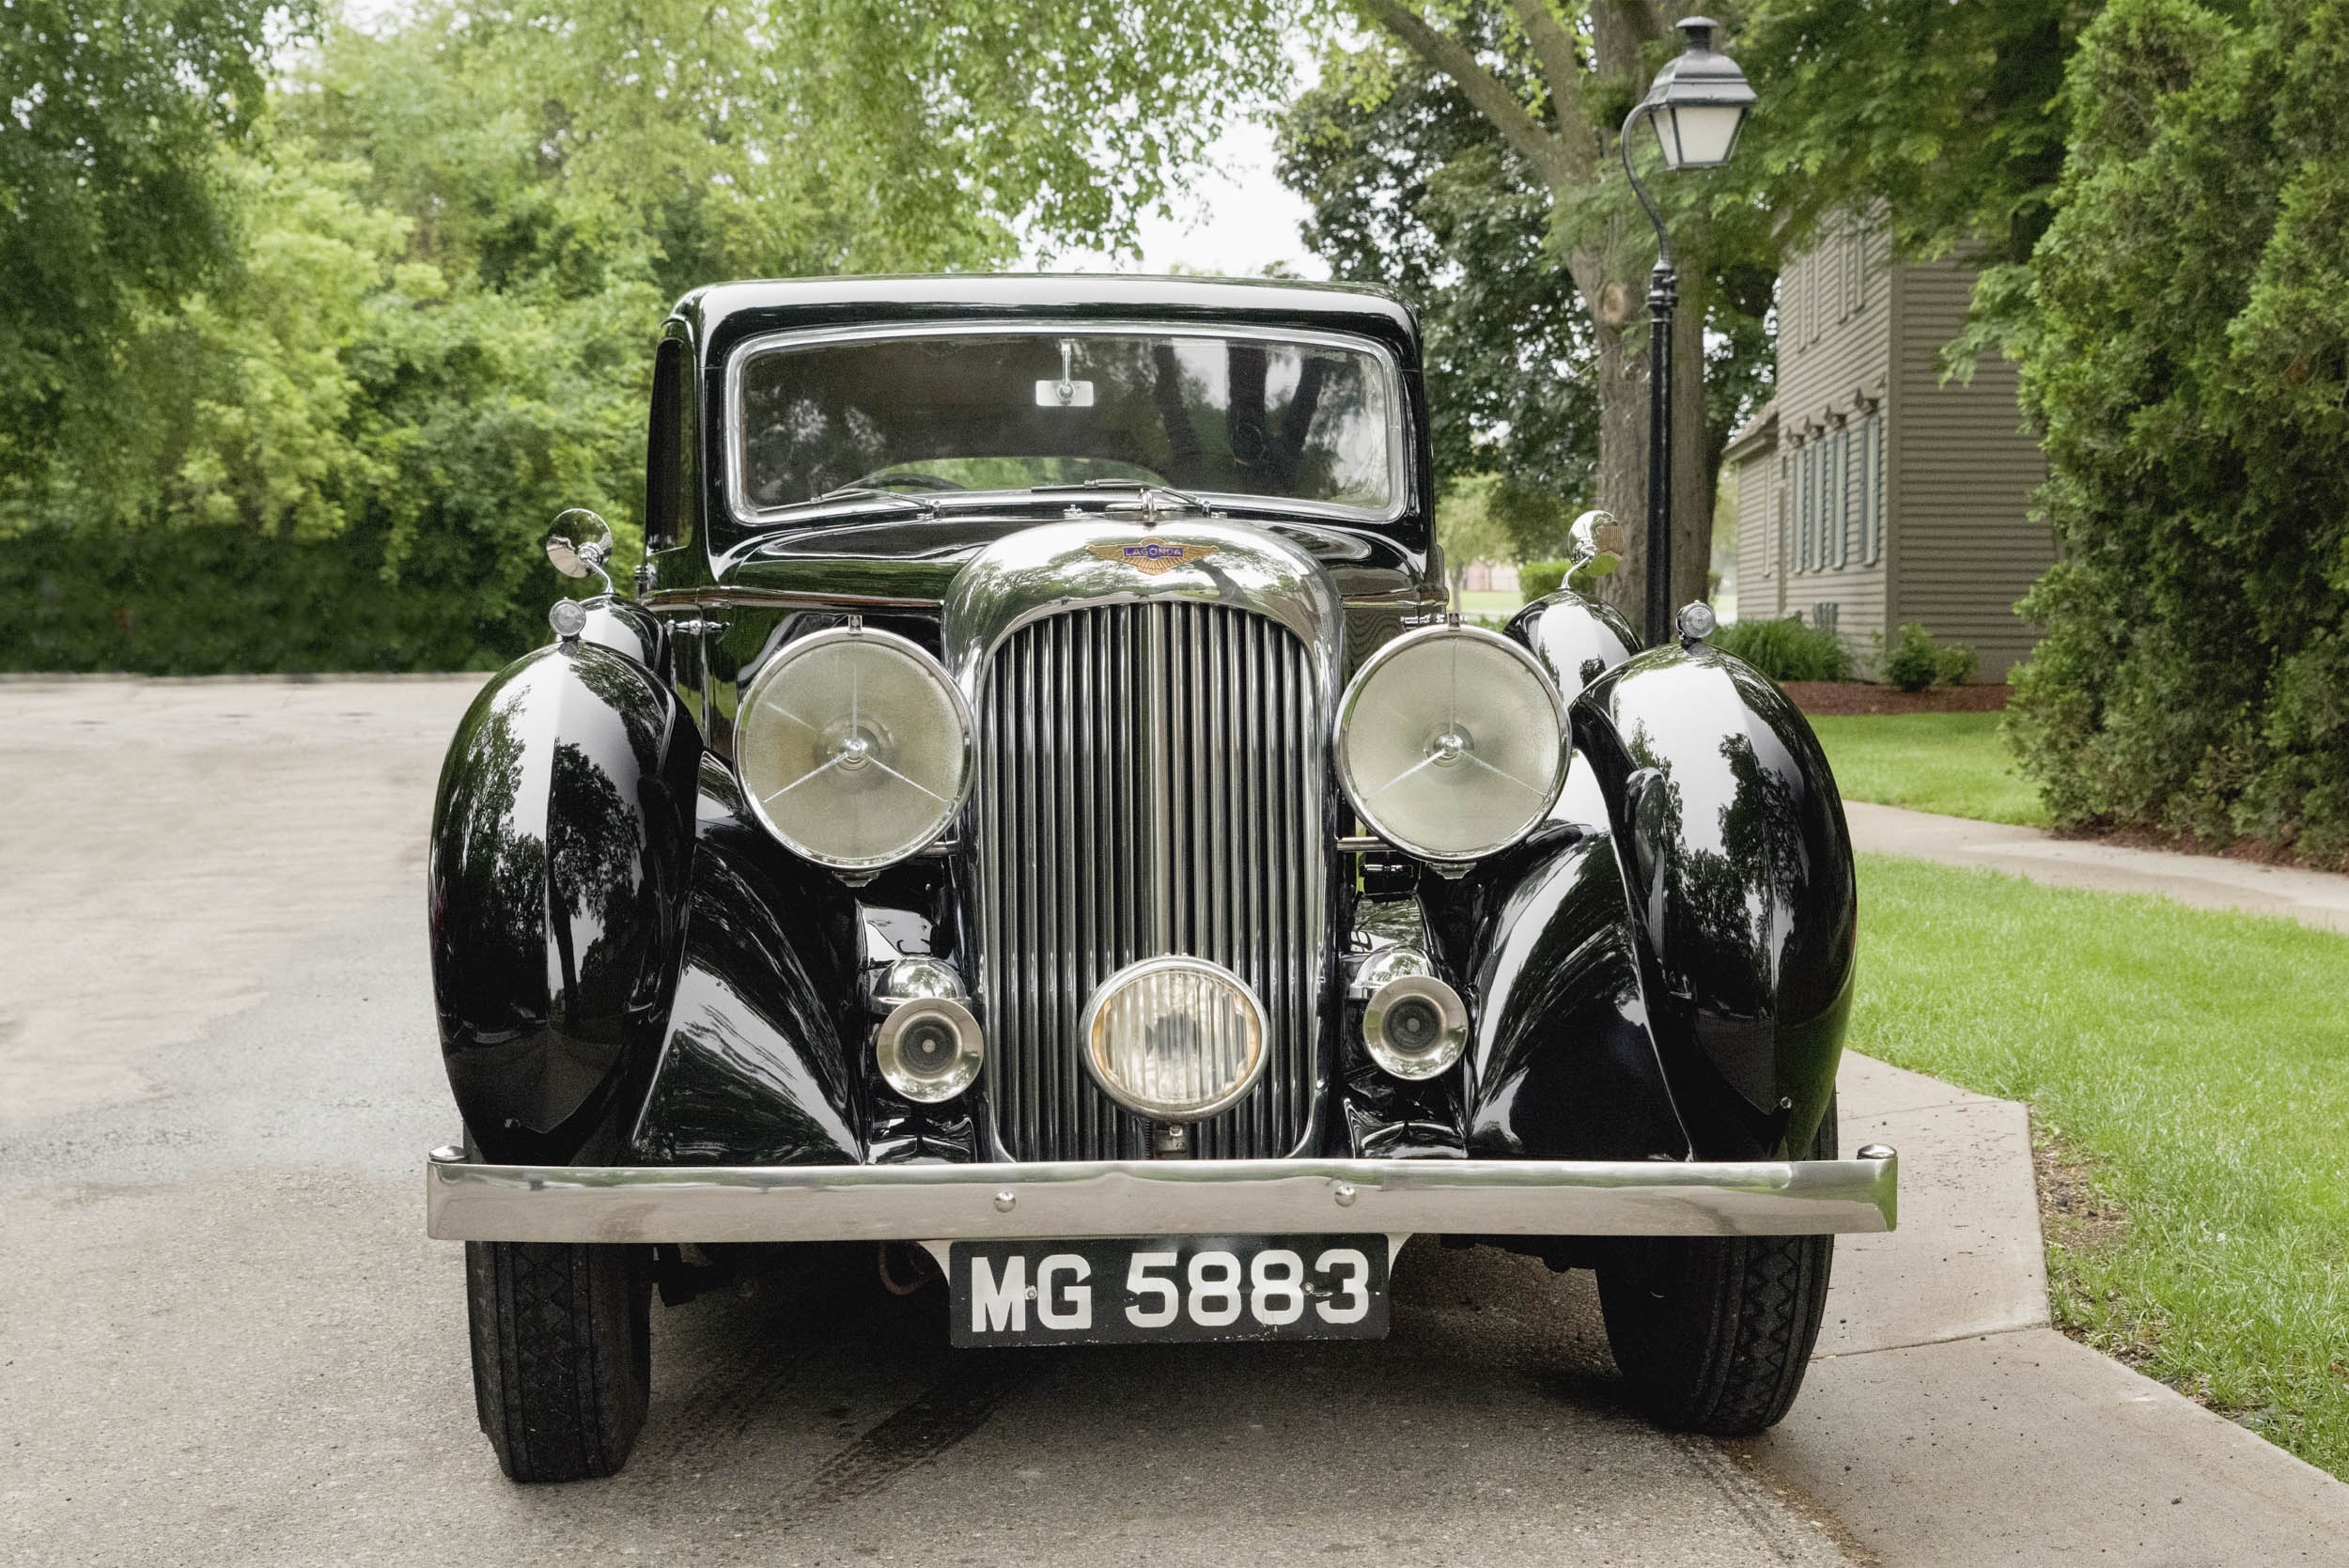 Huge headlamps, a fog light, chrome horns, and a vertical grille can make any lover of pre-war British luxury cars swoon.